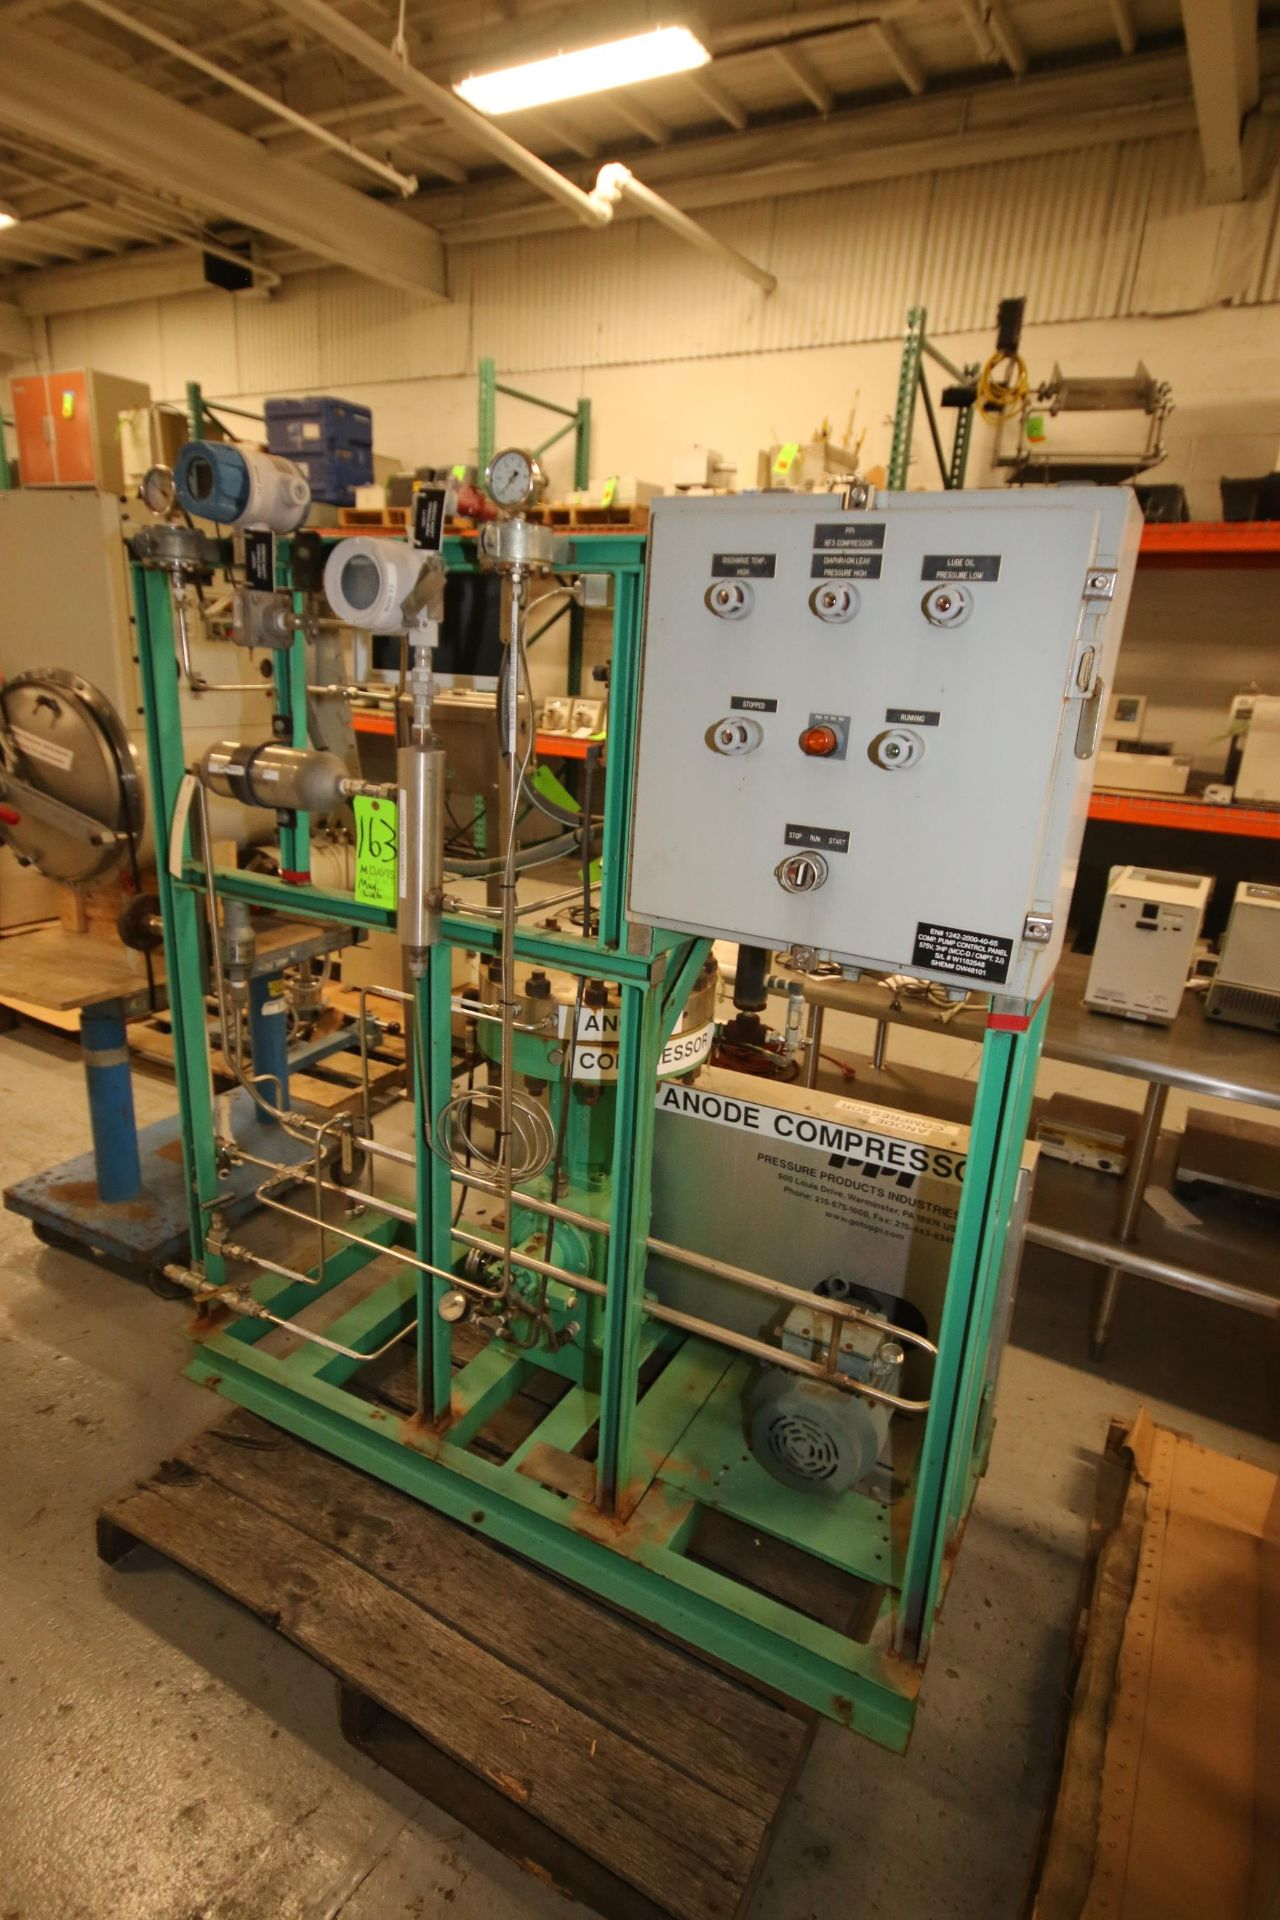 Lot 163 - PPI Anode Compressor, with 2 hp Drive, 1725 RPM, with Piping & Gauges